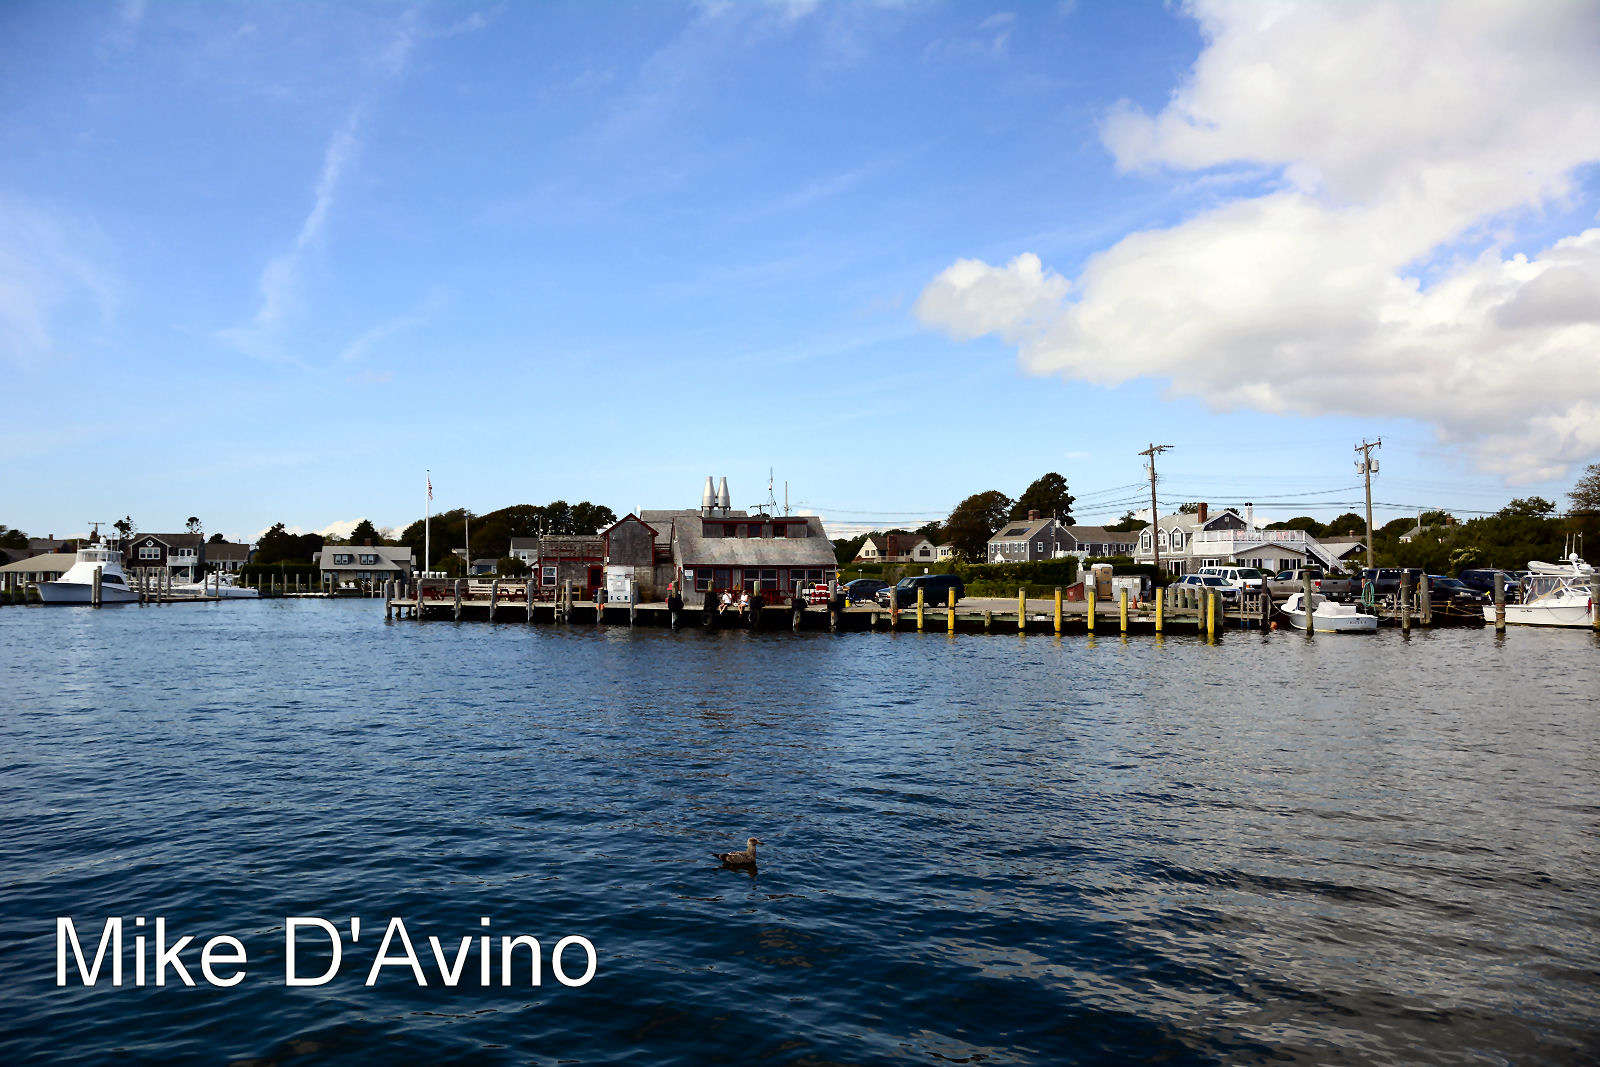 Las Vegas 94 >> Gallery Non-Sports: An Afternoon in Falmouth, Cape Cod, MA ...